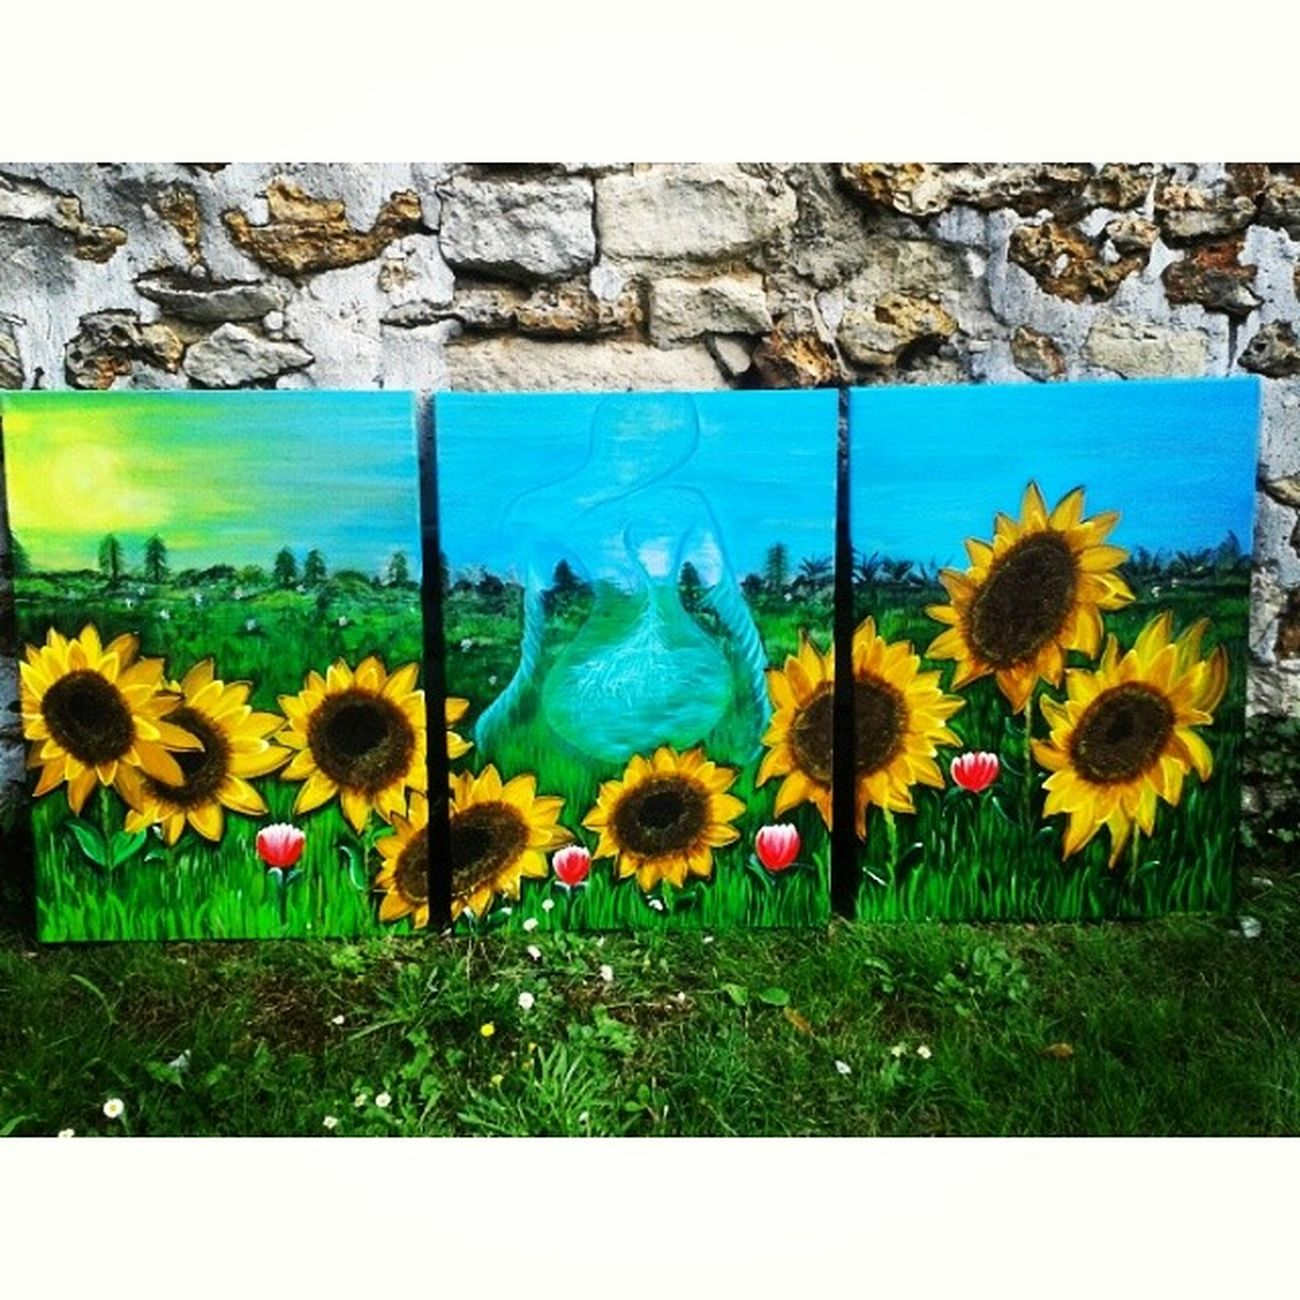 TableauxTournesols Mes Peintures Acryliques artartisteabstraitcouleurfemmededostriptikpaysagetulipessocuteinstantinstacoolréelirréelimaginationfleurfloweroriginalfollow instagooddreampaintingsrêvelove nature